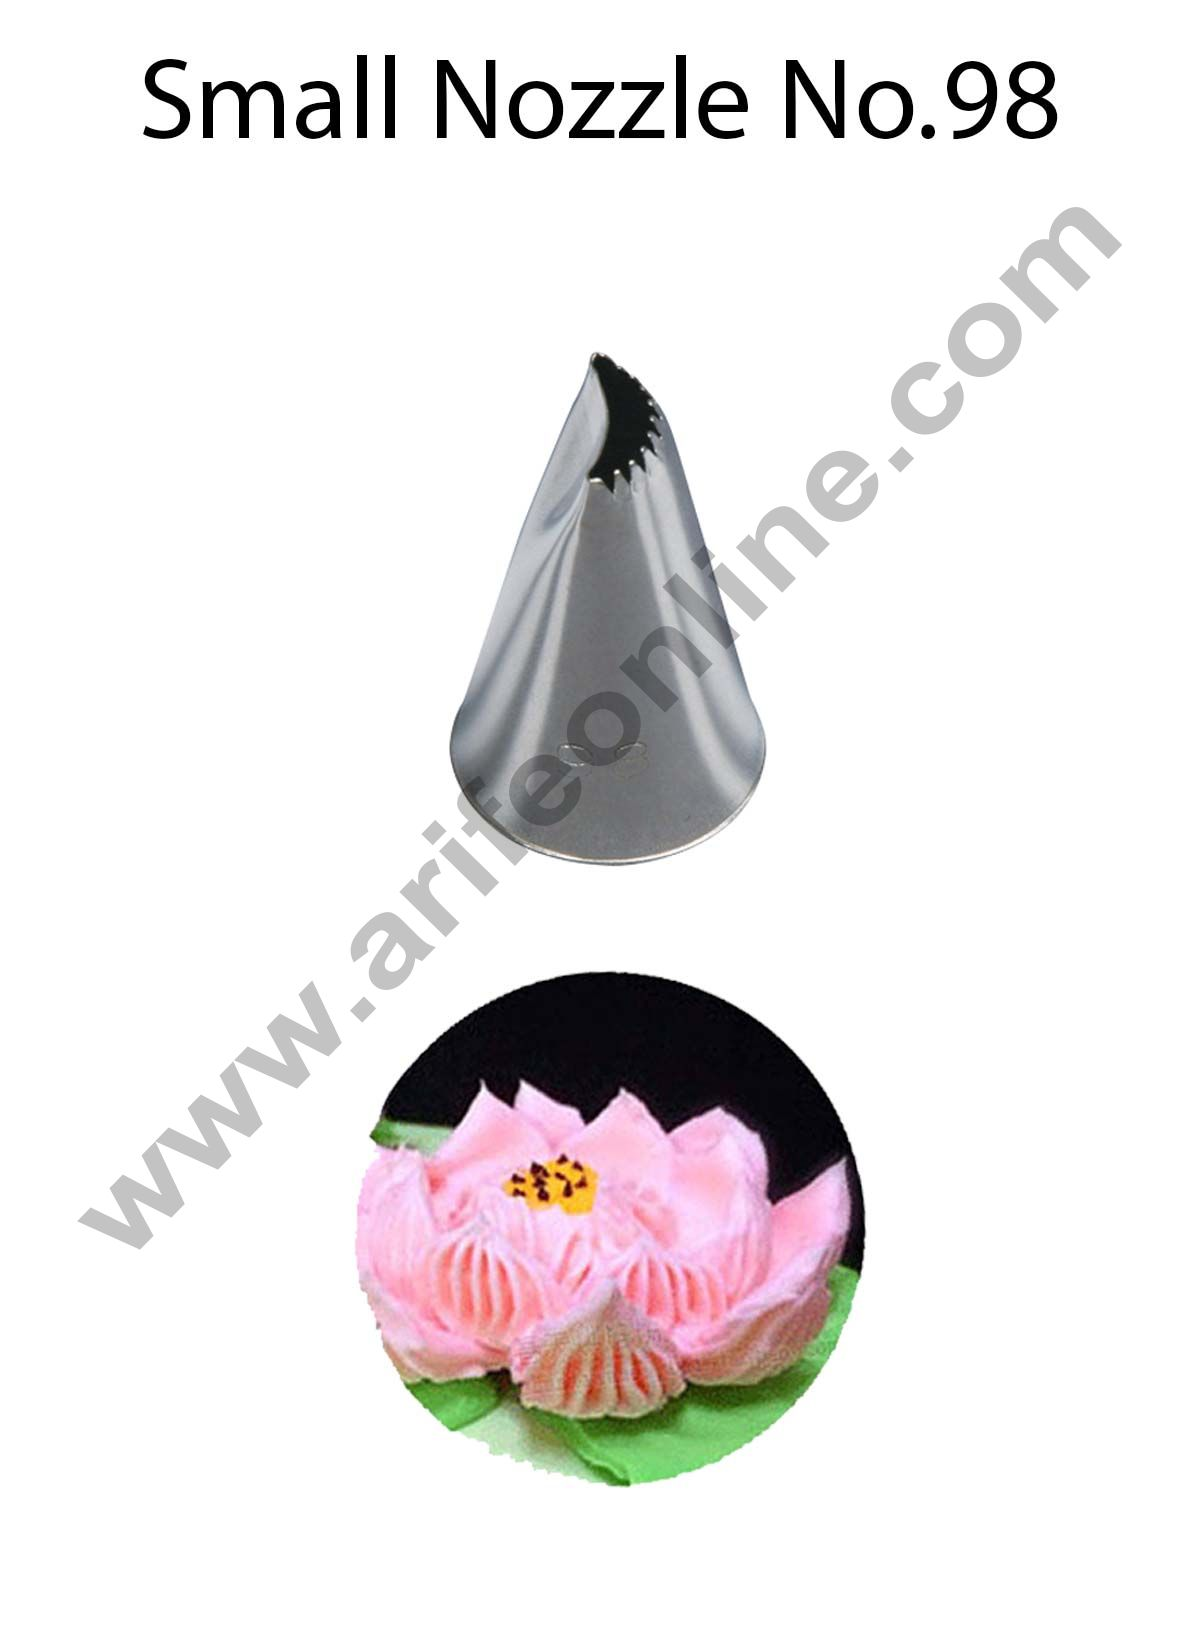 Cake Decor Small Nozzle - No. 98 Specialty Piping Nozzle